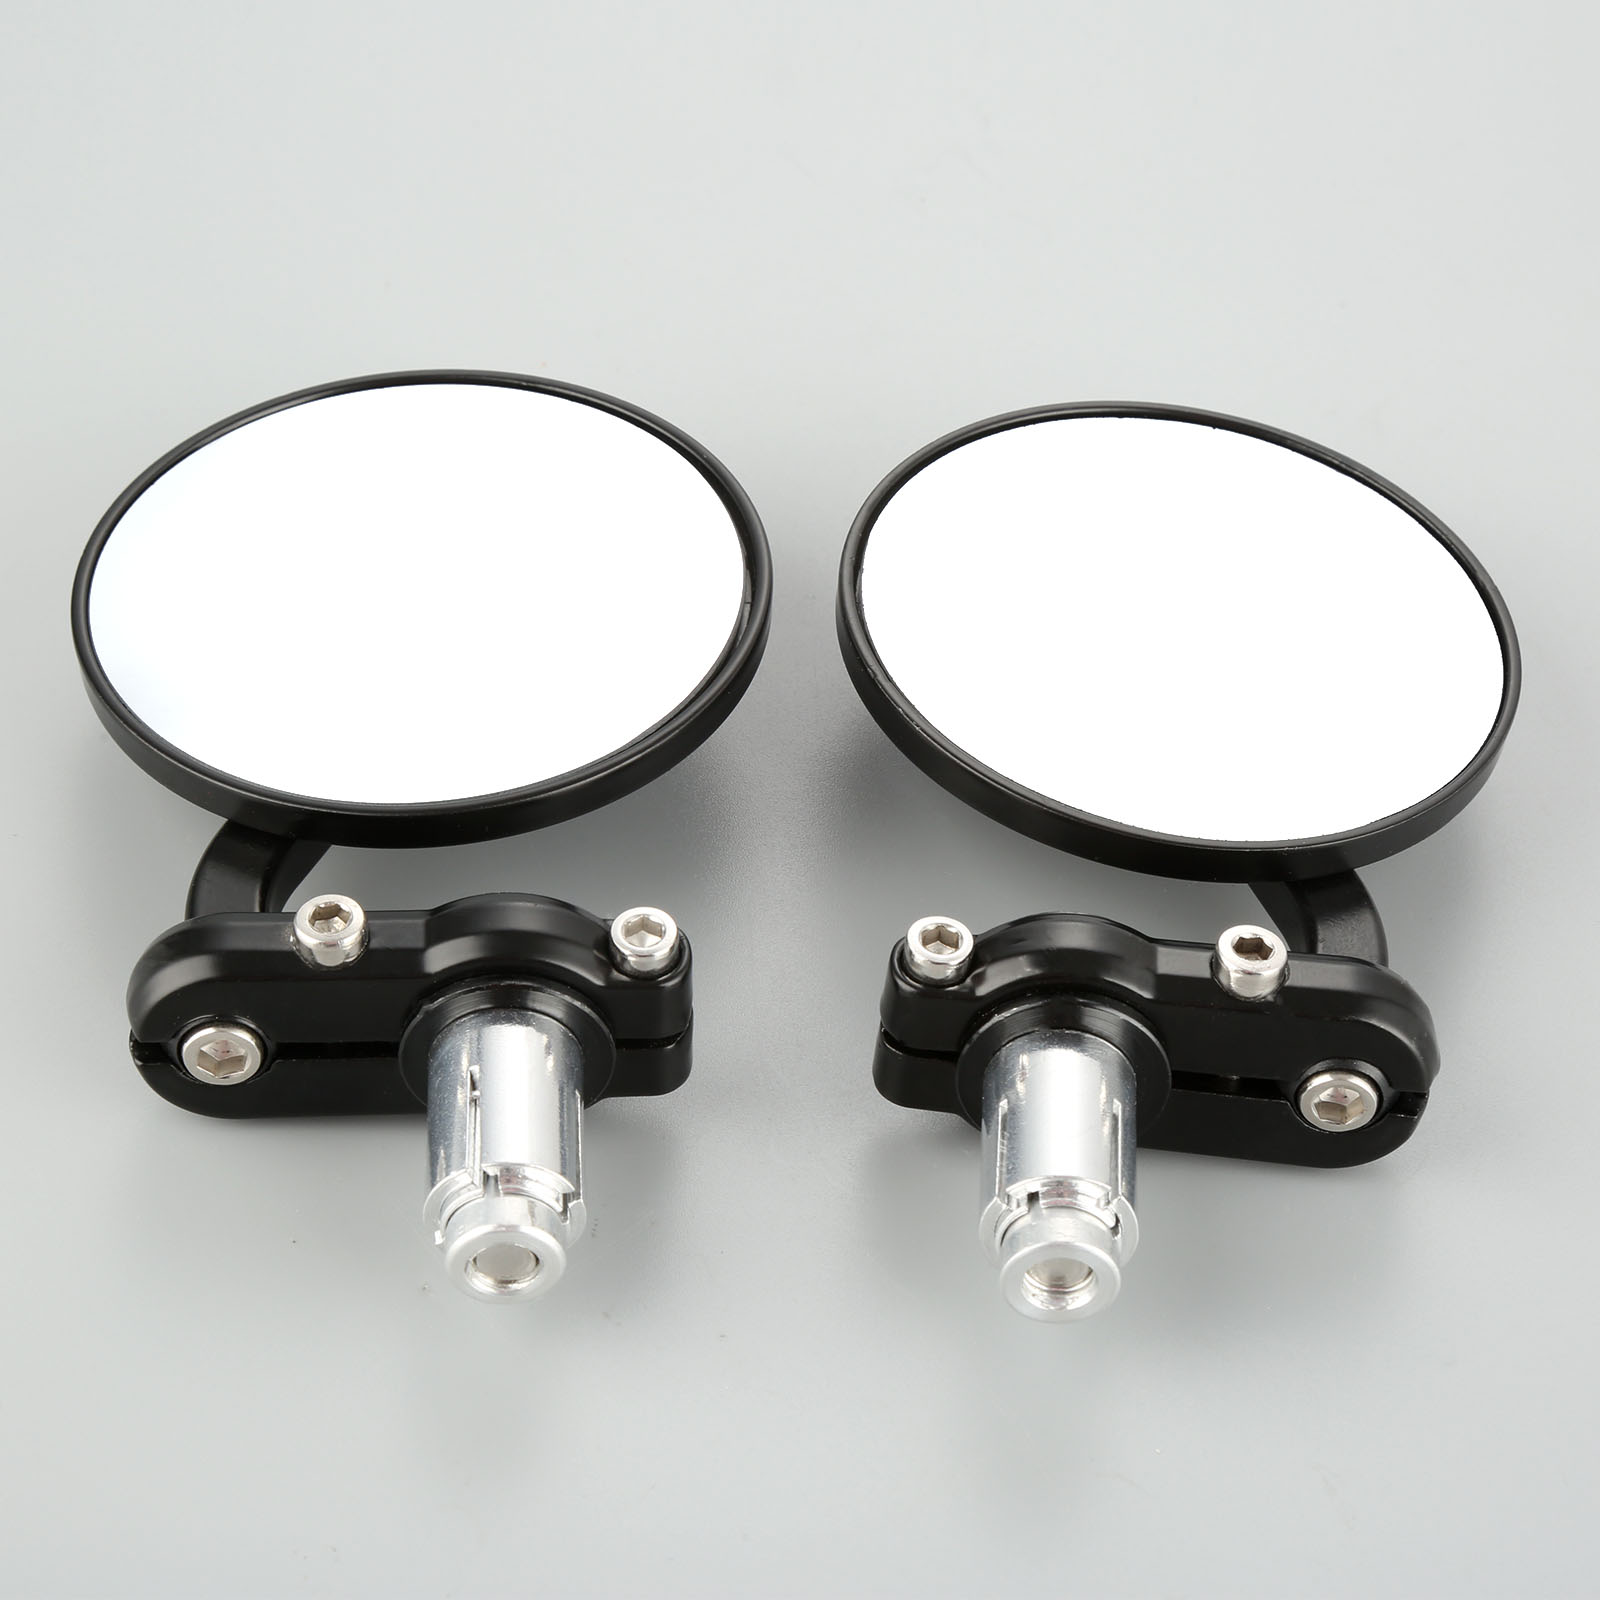 "2Pcs 3inch Round 7/8"" Handle Bar End Mirrors Cafe Racer Bobber Clubman For Honda Suzuki Yamaha Cafe Racer Bobber-in Side Mirrors & Accessories from Automobiles & Motorcycles"